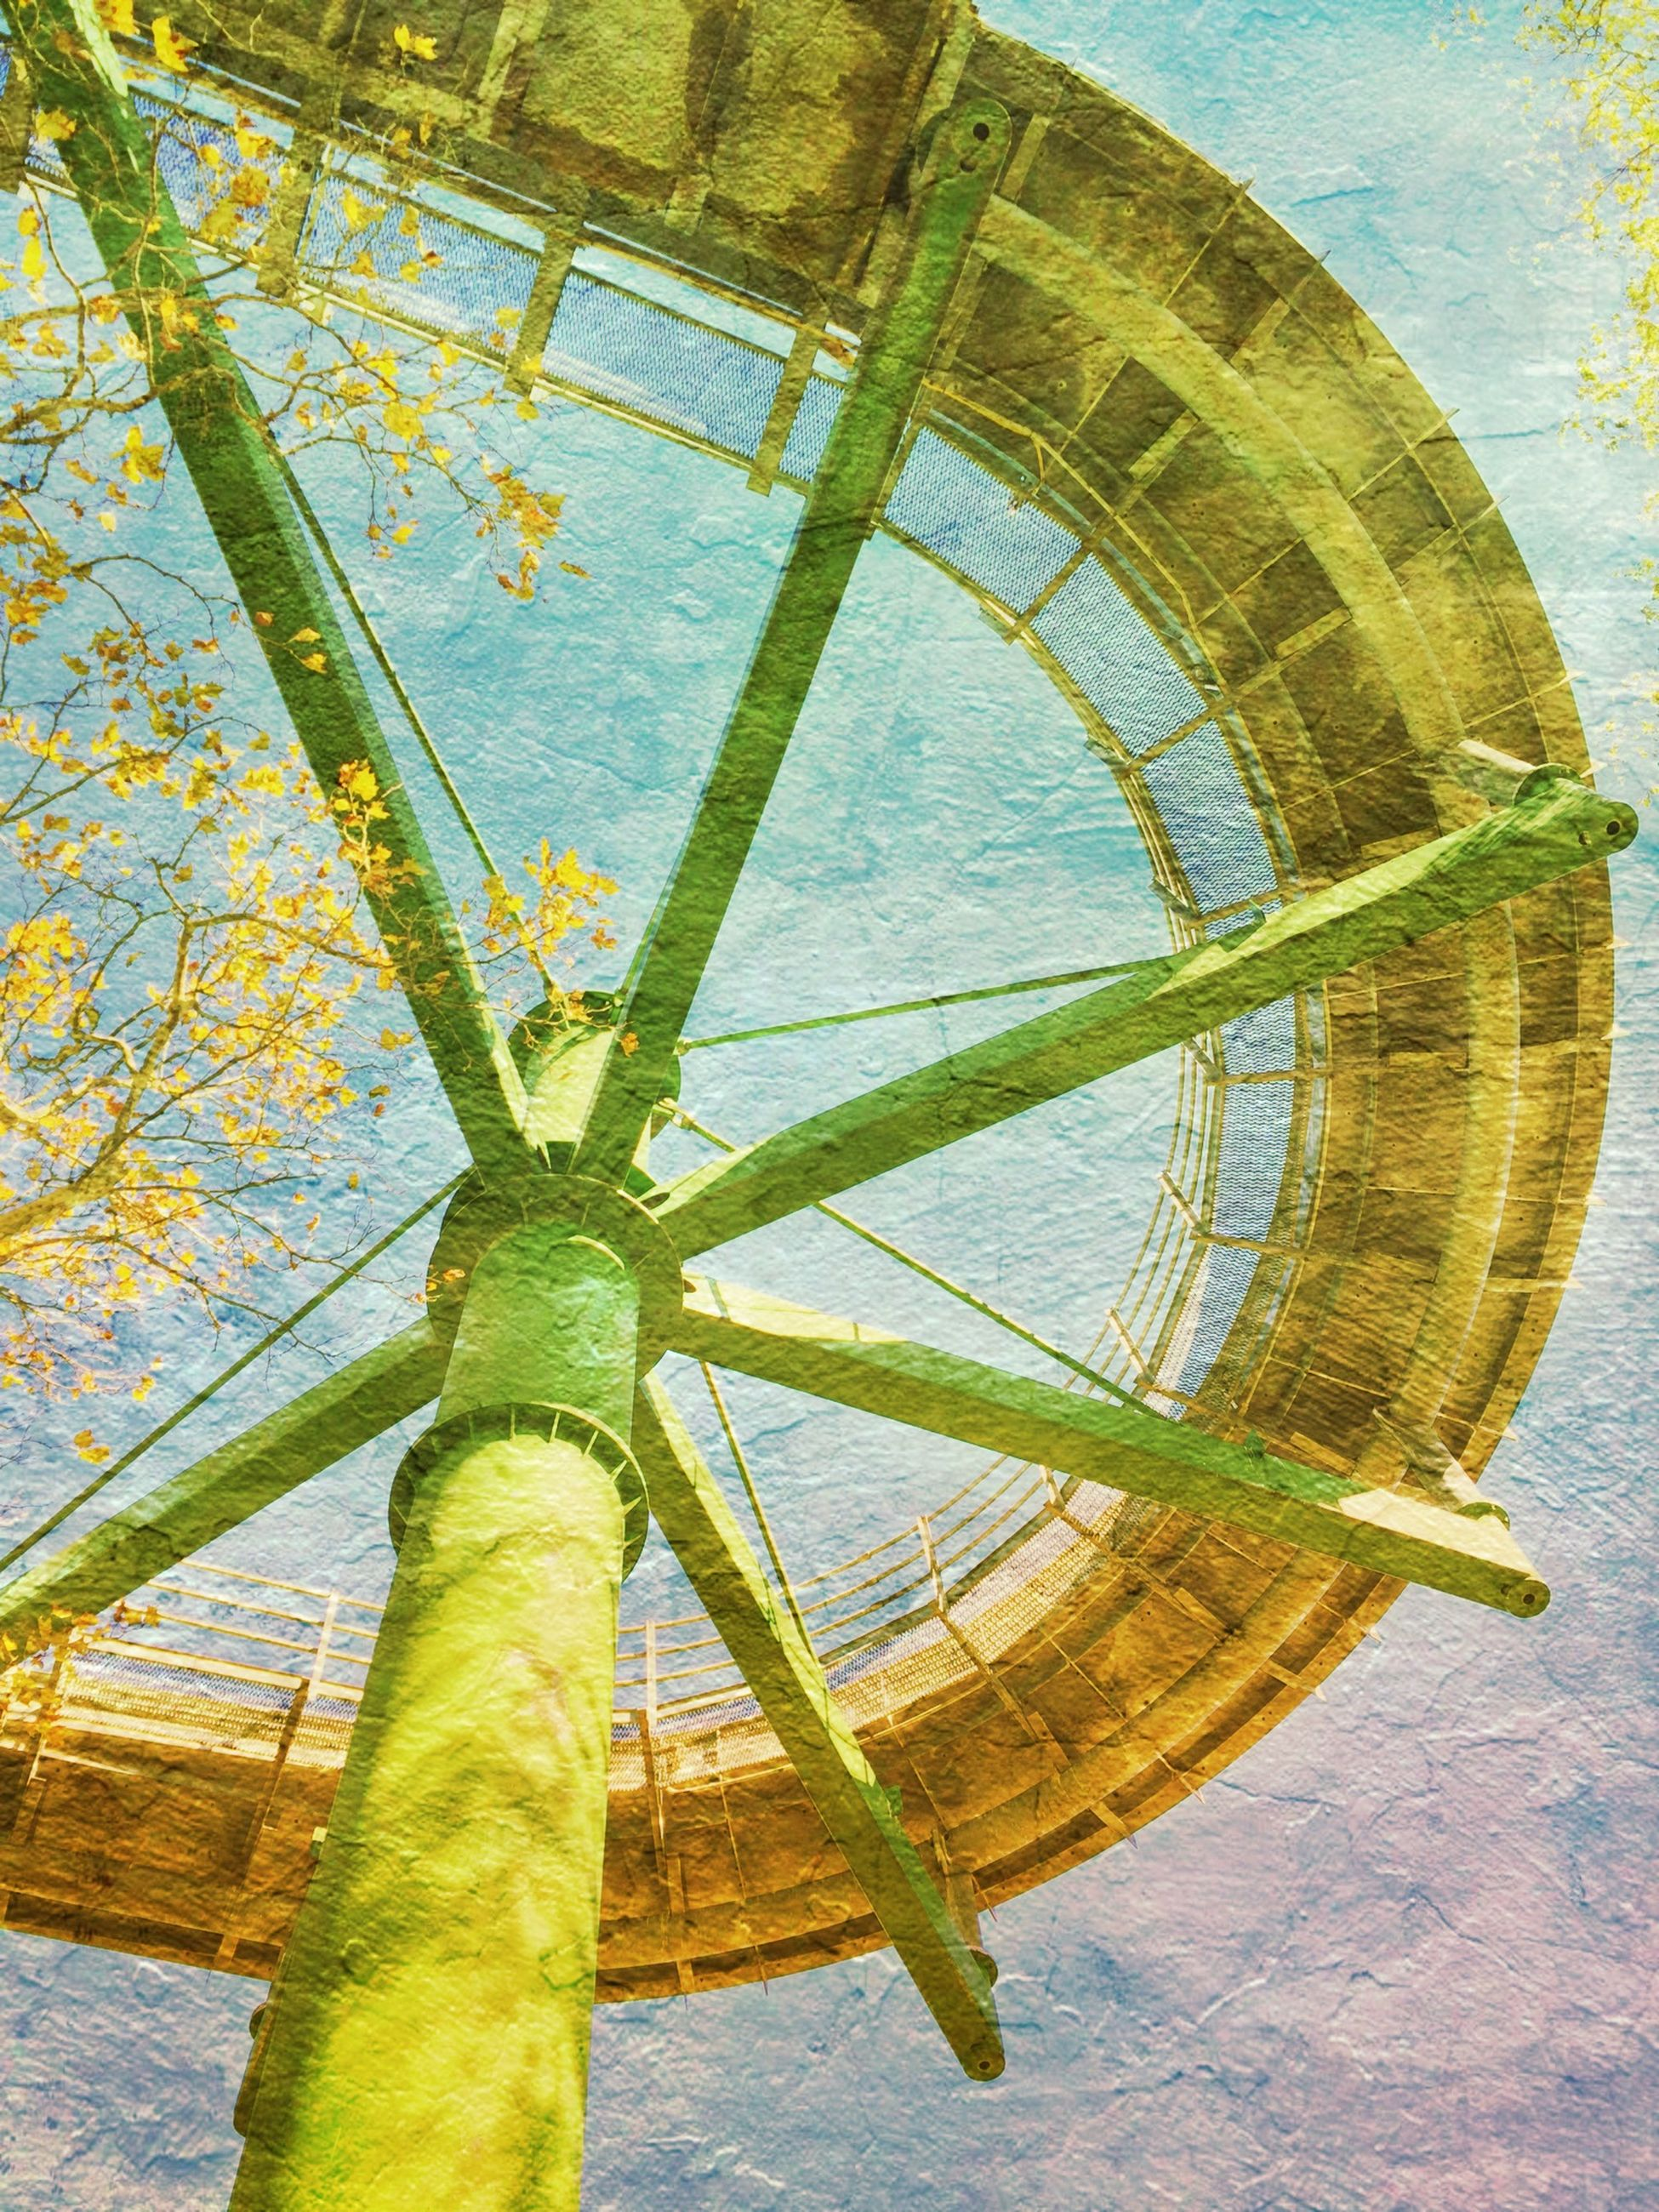 water, built structure, wood - material, day, architecture, nature, circle, no people, blue, outdoors, tree, sunlight, metal, pattern, green color, sky, yellow, tranquility, art, art and craft